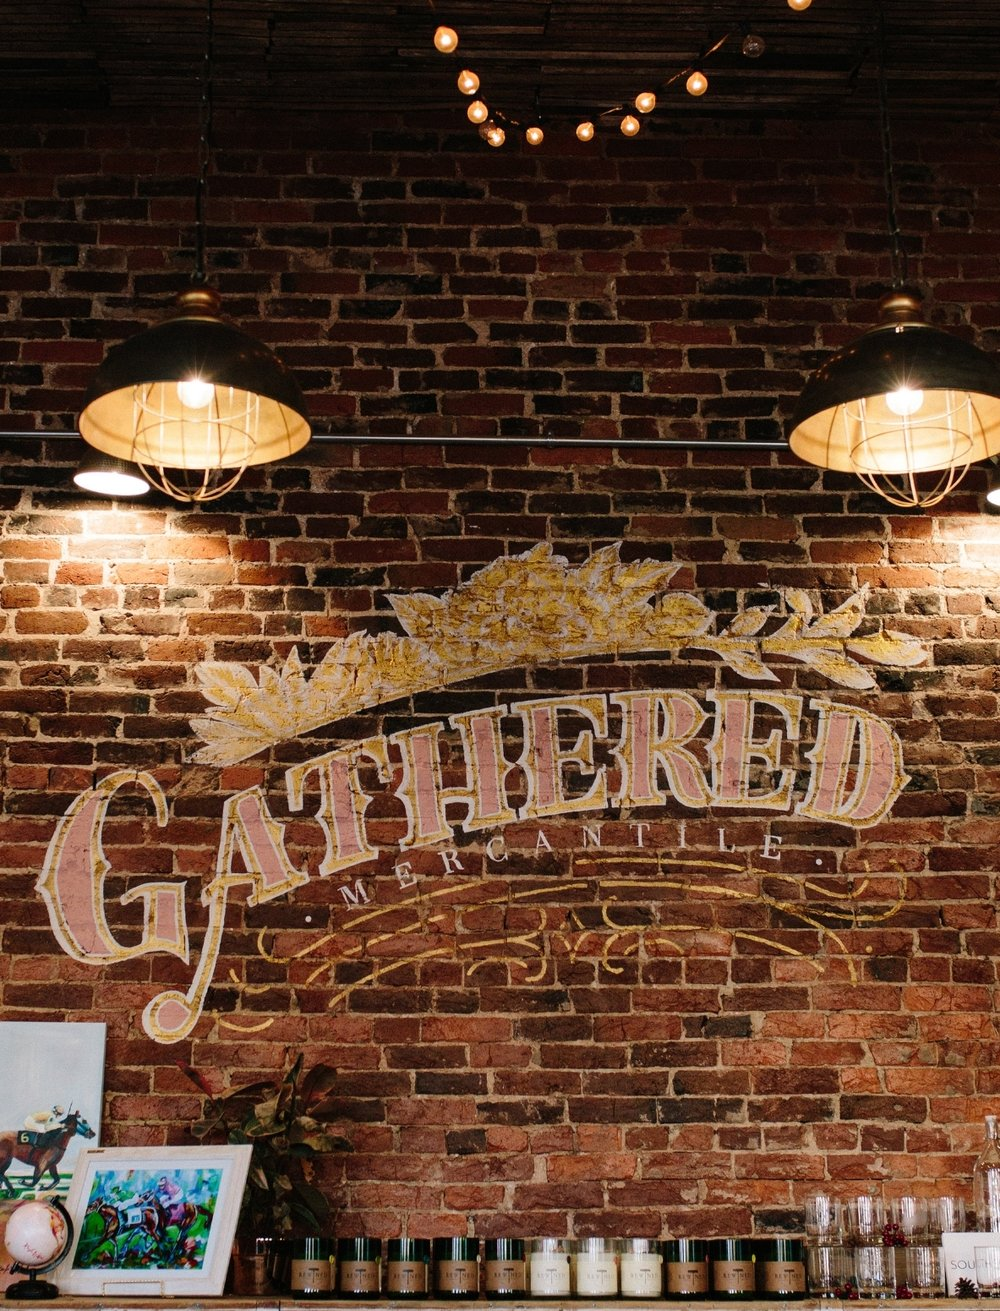 visit our store, Gathered Mercantile - Situated in downtown Versailles, Kentucky, we have collaborated with Kentucky artisans, vendors, and talent to bring you a unique mix of vintage + local goods. Grab a cup of coffee from our adjoining coffee shop, Amsden Coffee Club, and shop with us!